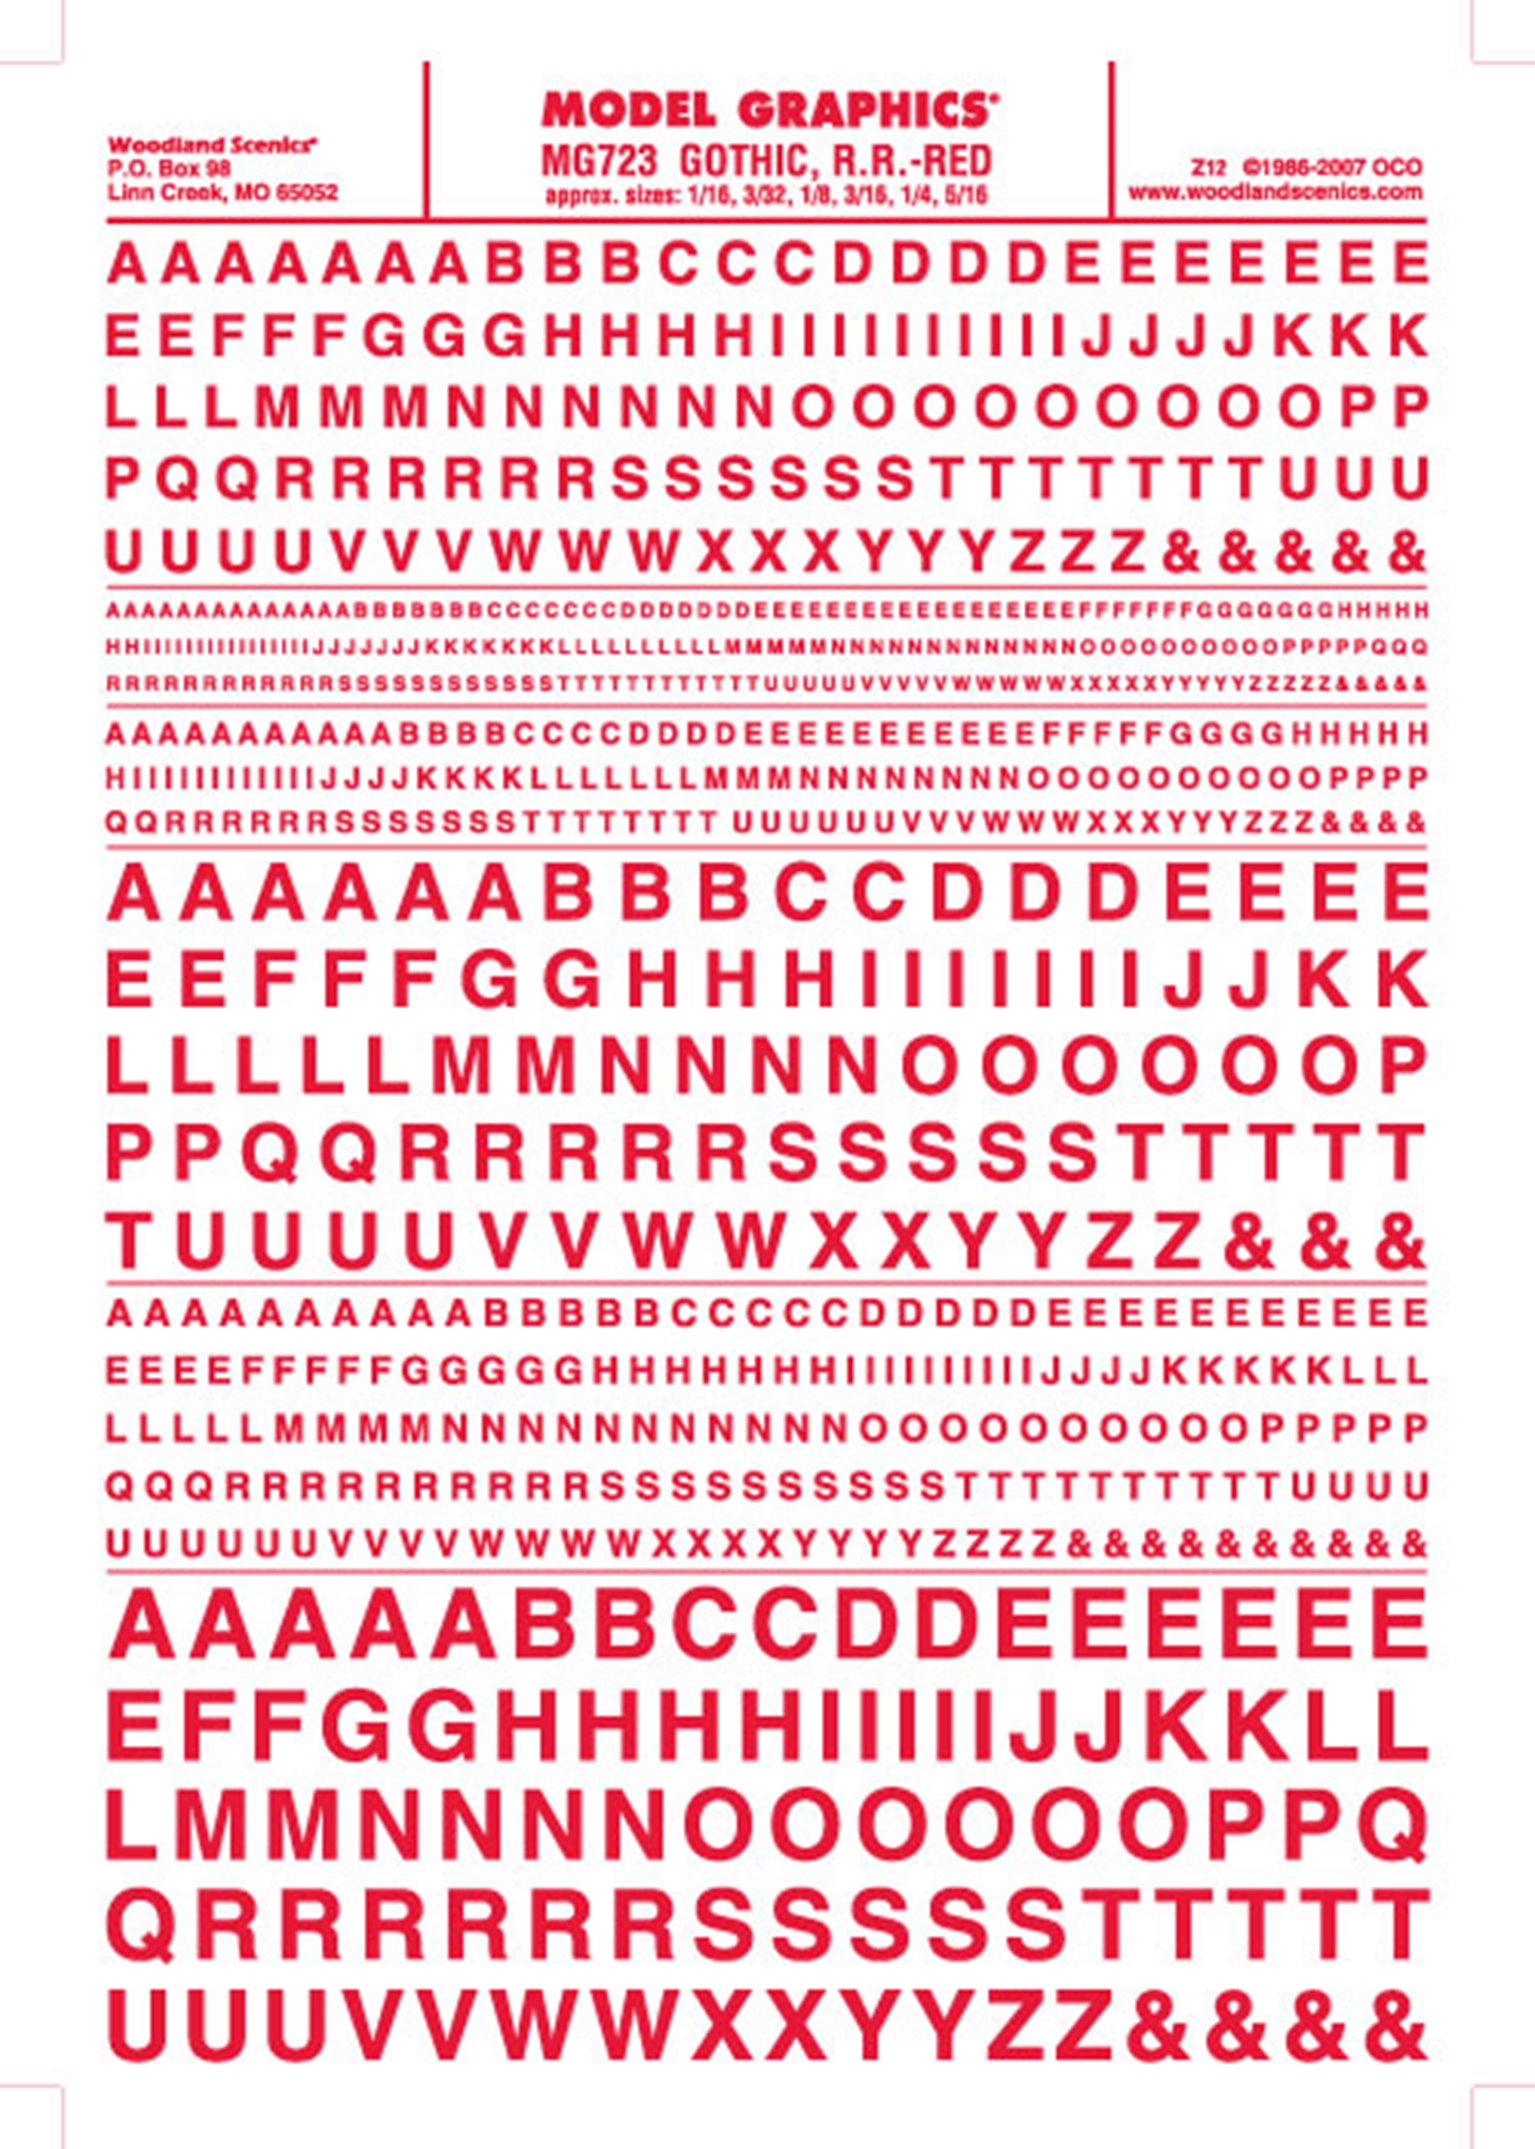 Gothic, R.R - Red Dry Transfer Decals